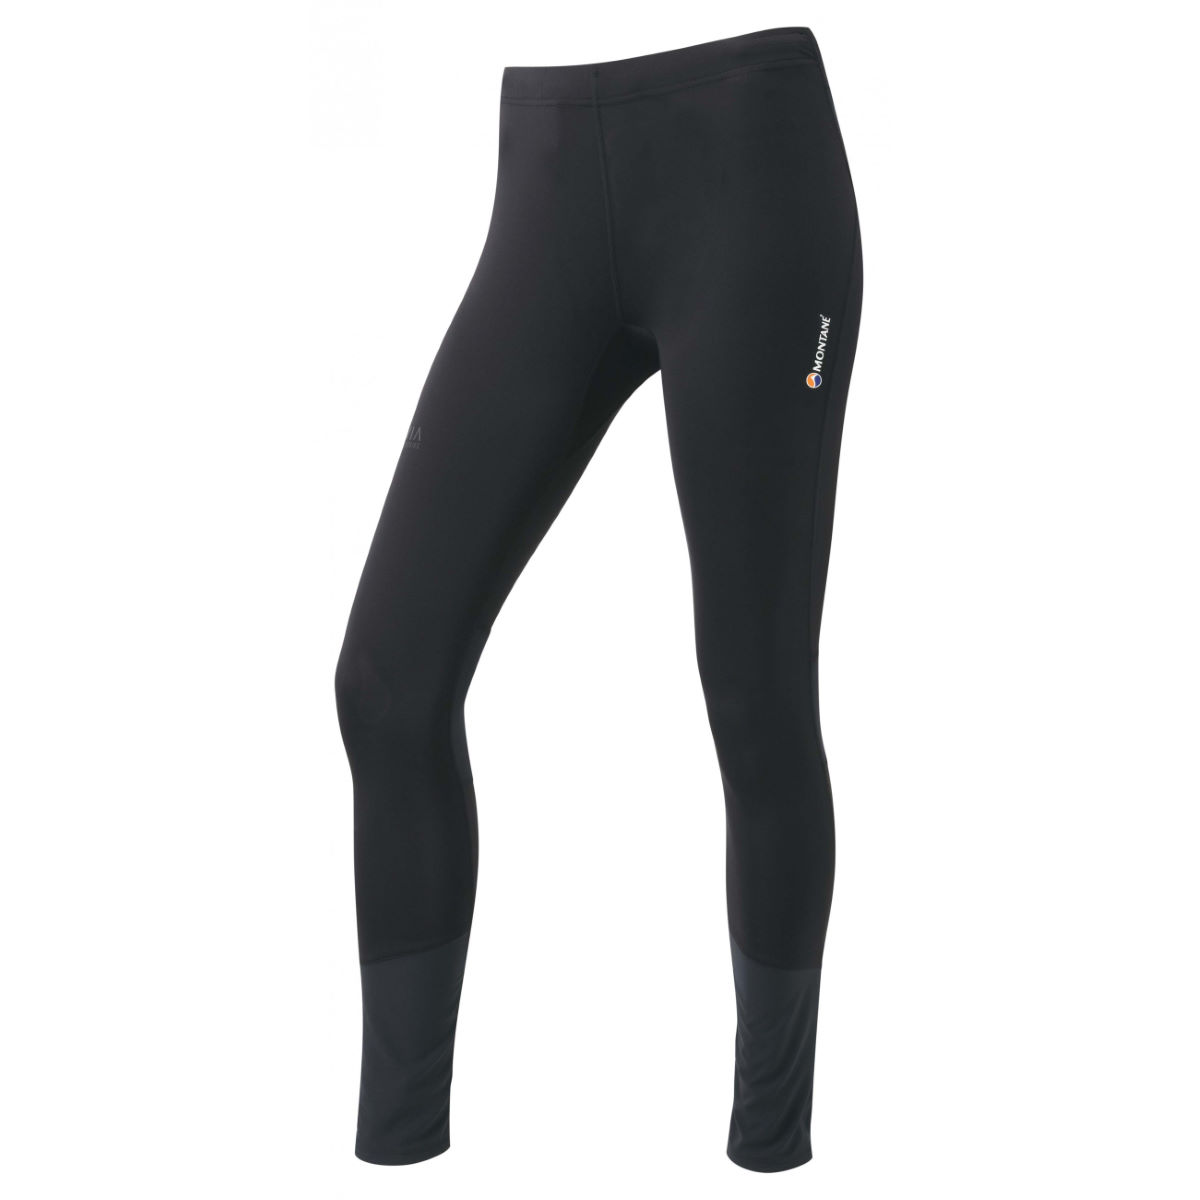 Collant long Femme Montane Trail Series (AH16) - XS Noir Collants